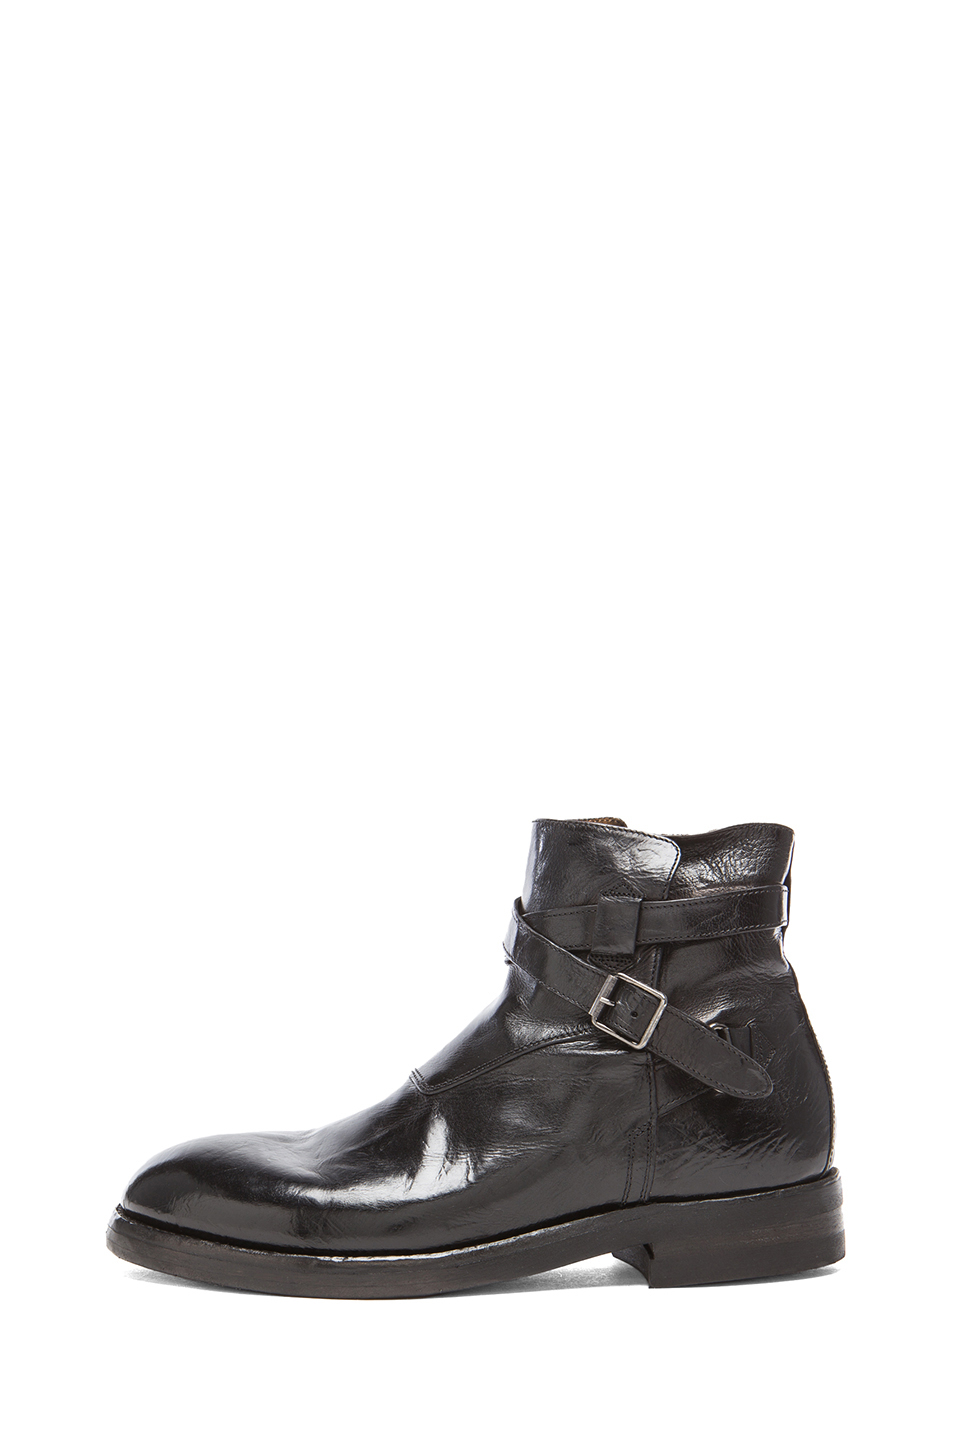 officine creative zipper leather boots in black for lyst